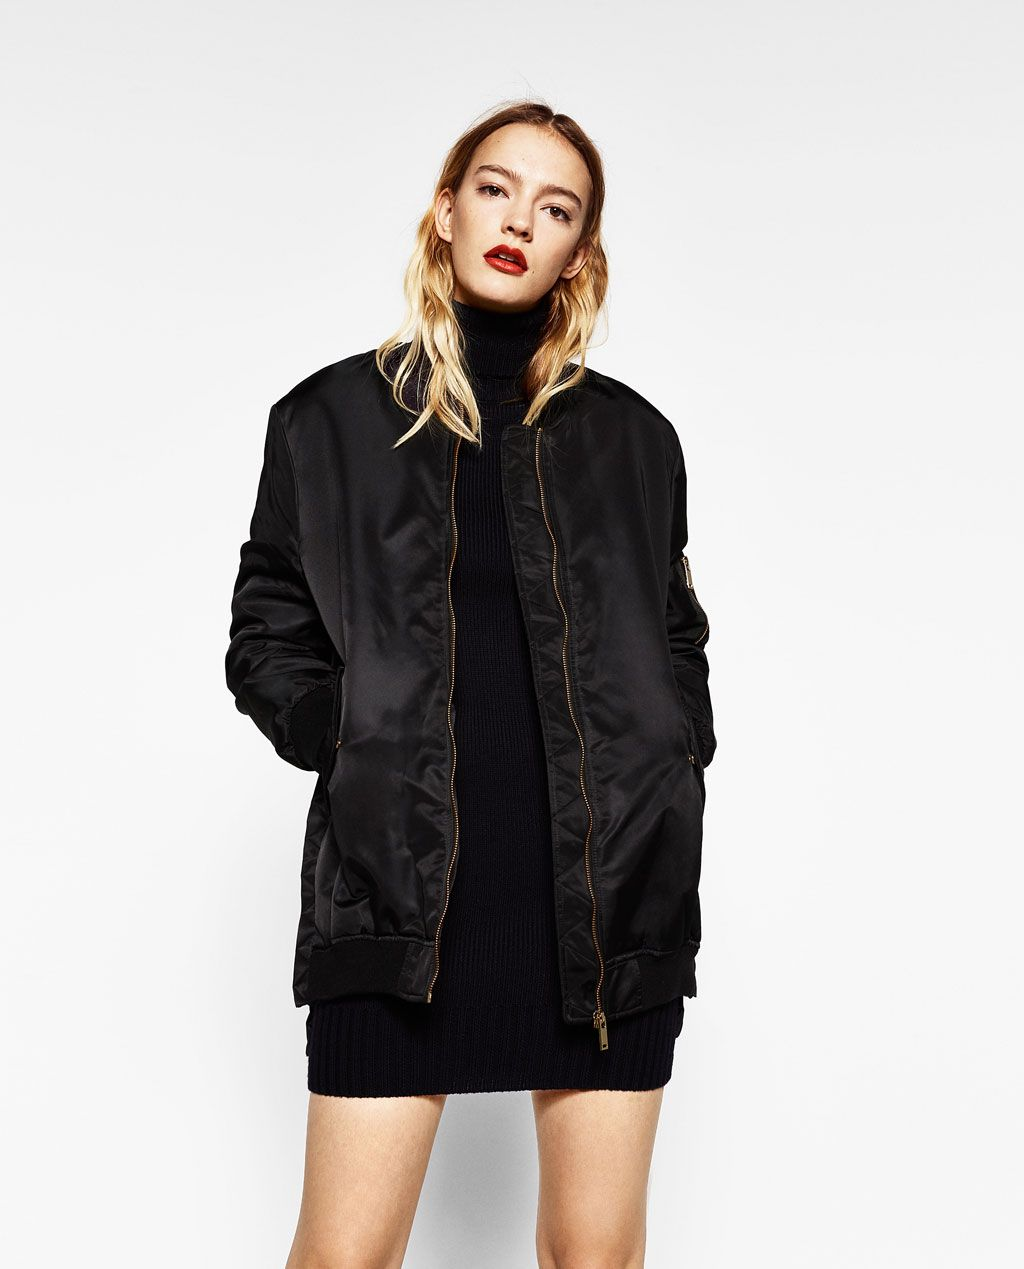 OVERSIZED BOMBER JACKET-View all-OUTERWEAR-WOMAN | ZARA United ...